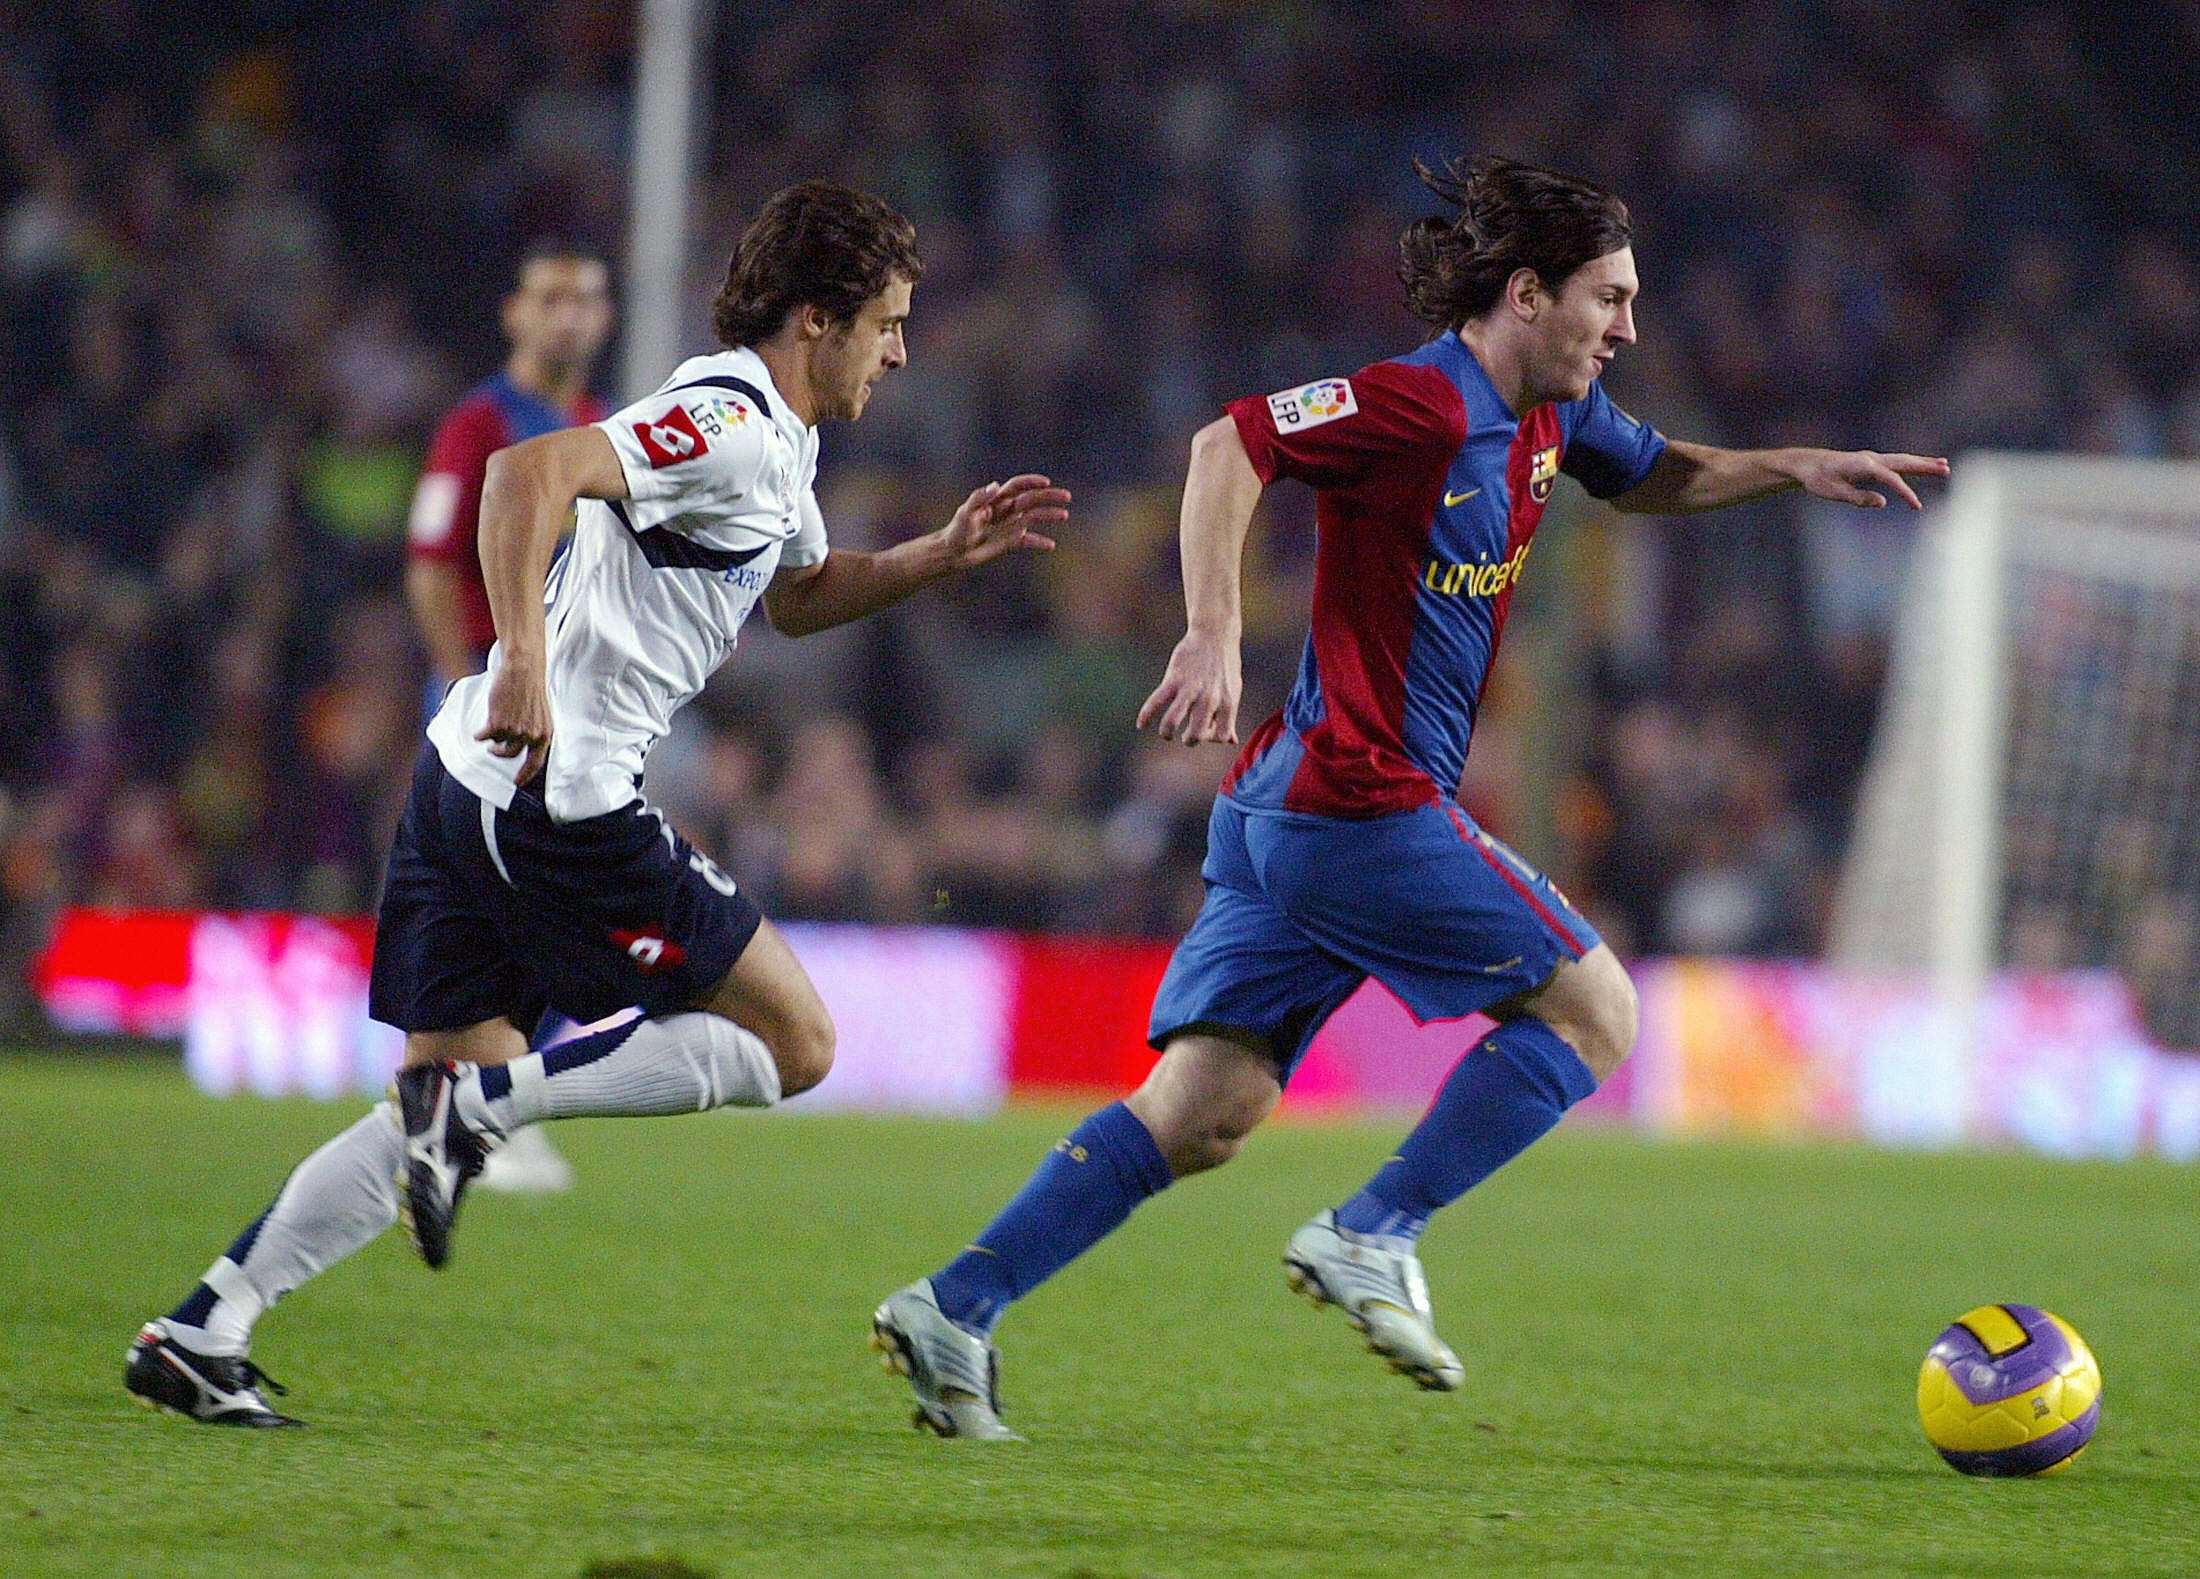 Barcelona, SPAIN:  Barcelona's Argentine Leo Messi (R) vies with Zaragoza's Pablo Aimar of Argentina (L) during their Spanish League football match at the Camp Nou Stadium in Barcelona, 12 November 2006. AFP PHOTO/CESAR RANGEL  (Photo credit should read CESAR RANGEL/AFP/Getty Images)